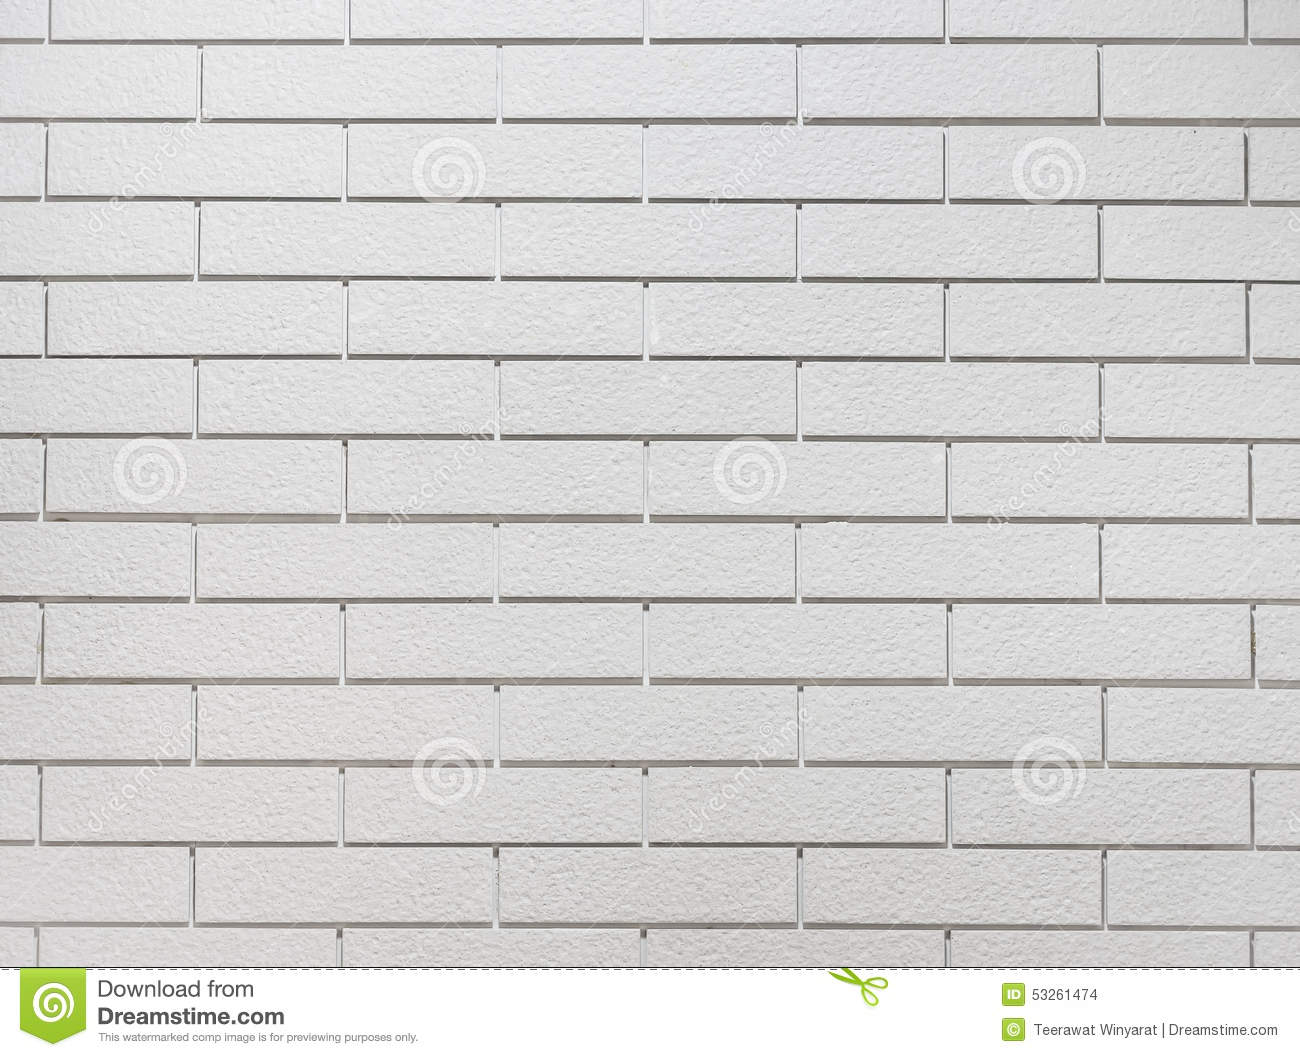 White Brick Tile Wall Background Stock Photo  Image 53261474. Corian Kitchen Sink. Small Space Kitchen Design. Moen Kitchen Faucet Removal Instructions. Kitchen Floor Paint. Bronze Kitchen Sinks. Kitchen Faucet With Separate Handle. Little Girl Kitchen. Studio Apartment Kitchen Ideas